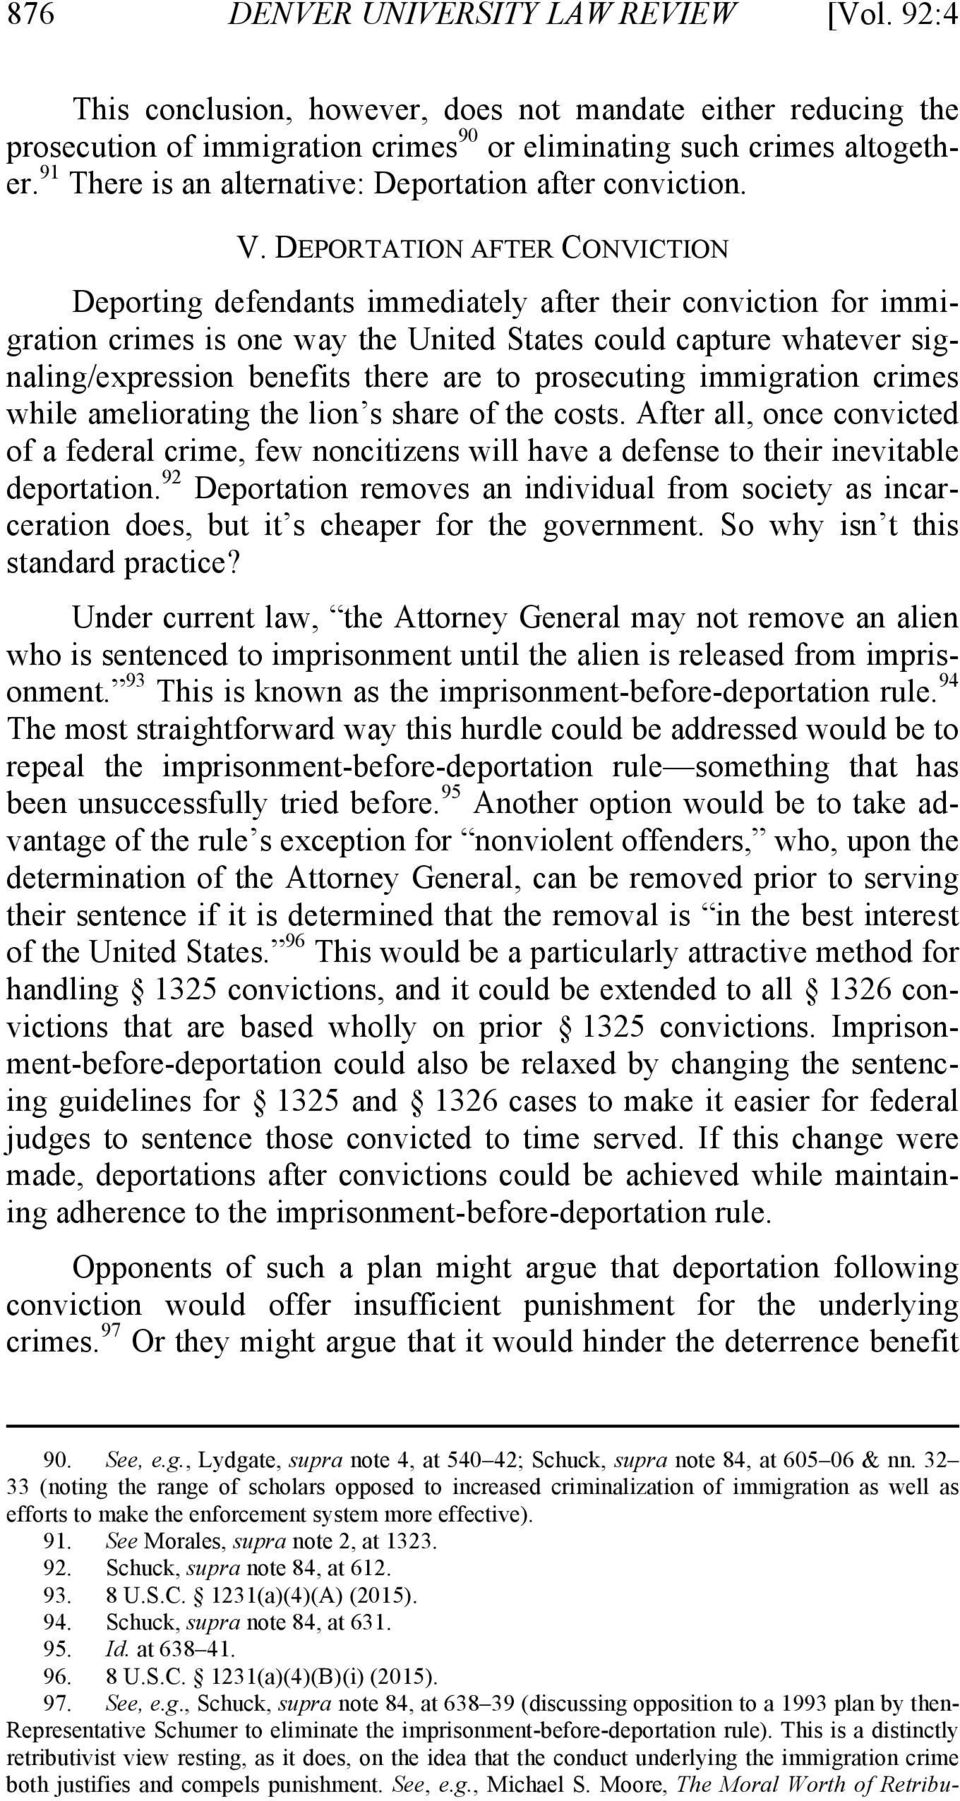 An analysis of federal convictions